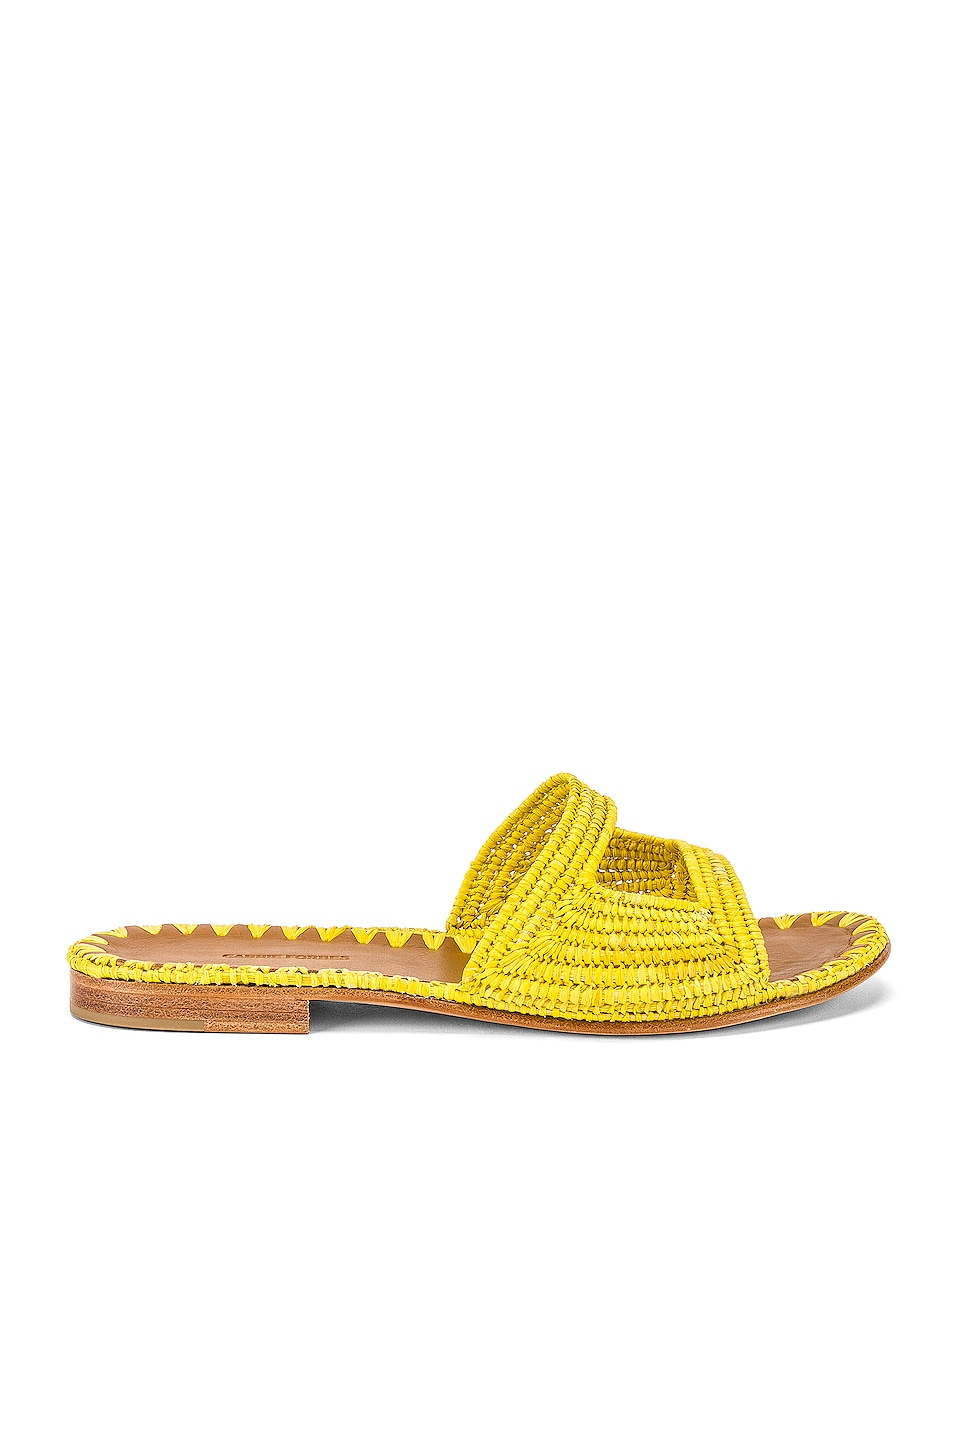 Carrie Forbes Vide Sandal in Jaune